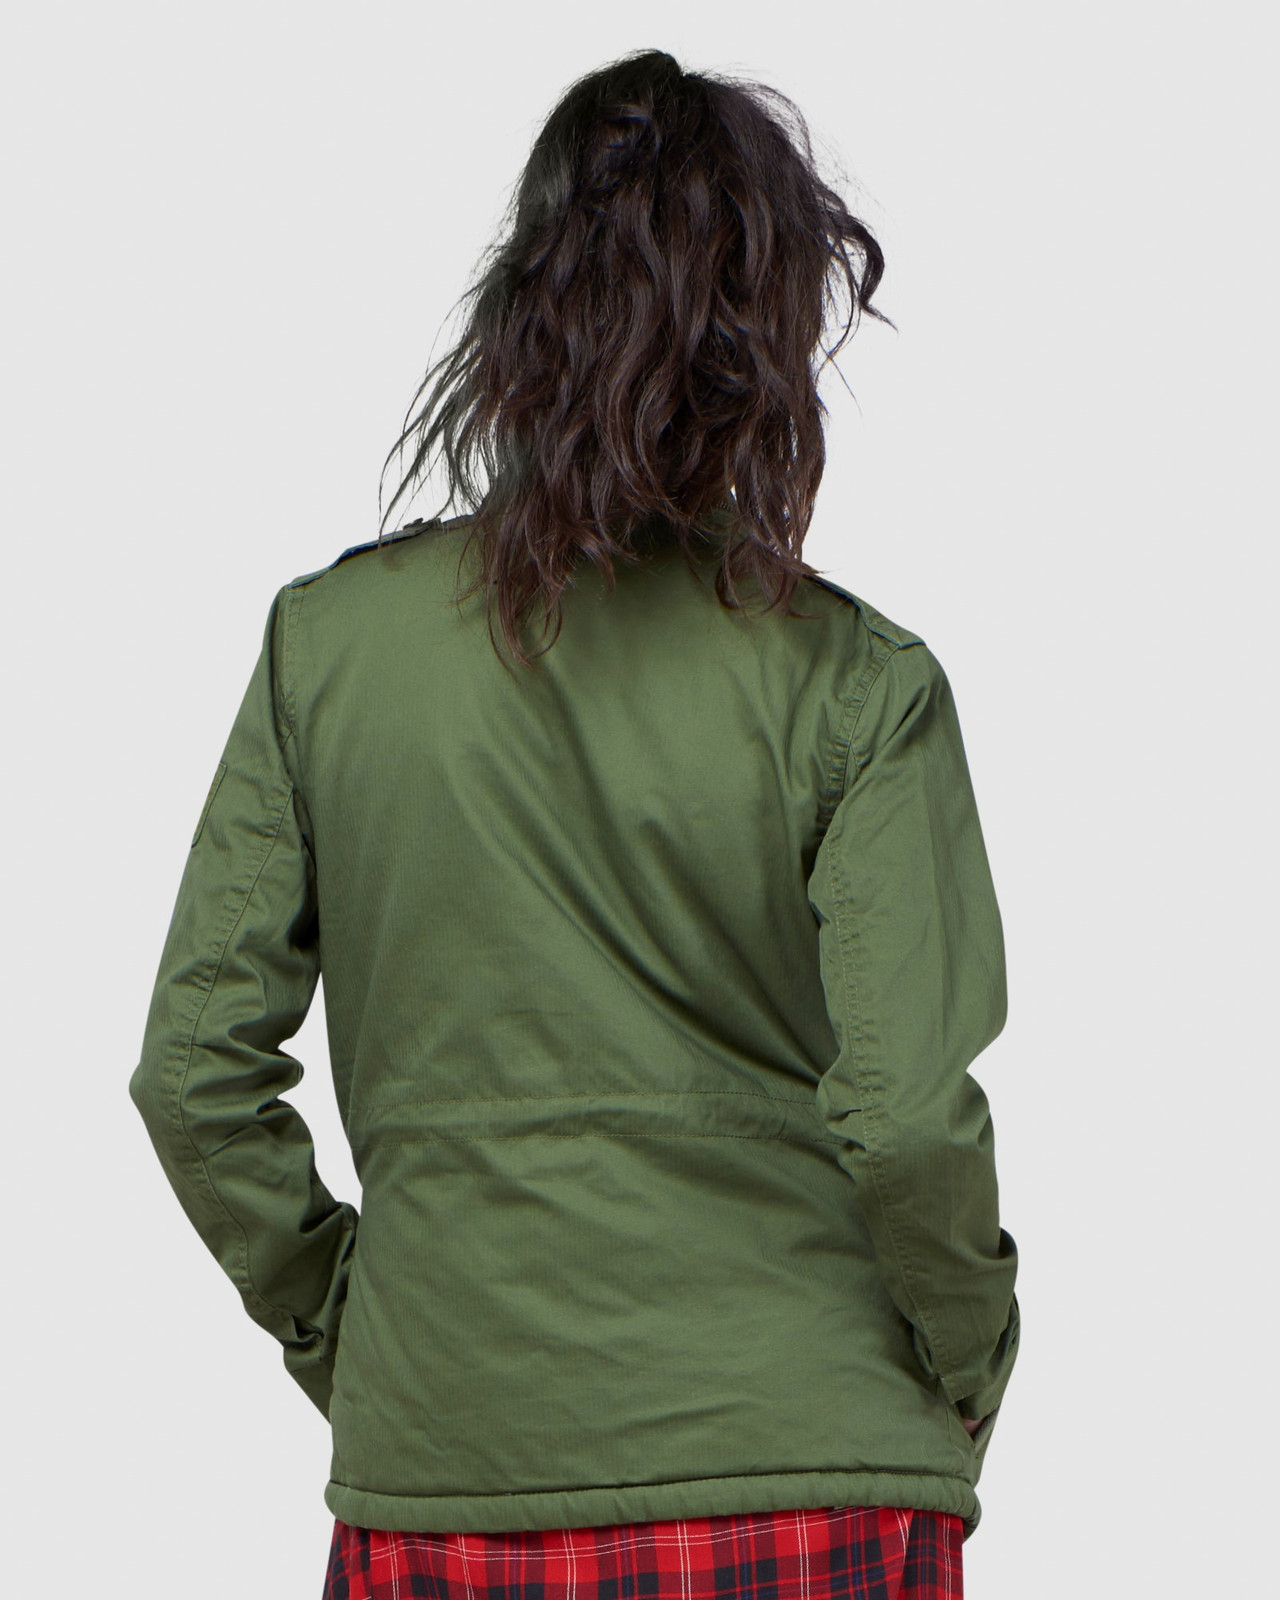 Superdry Womens CLASSIC RECRUIT BORG JACKET Green Military Jackets 3